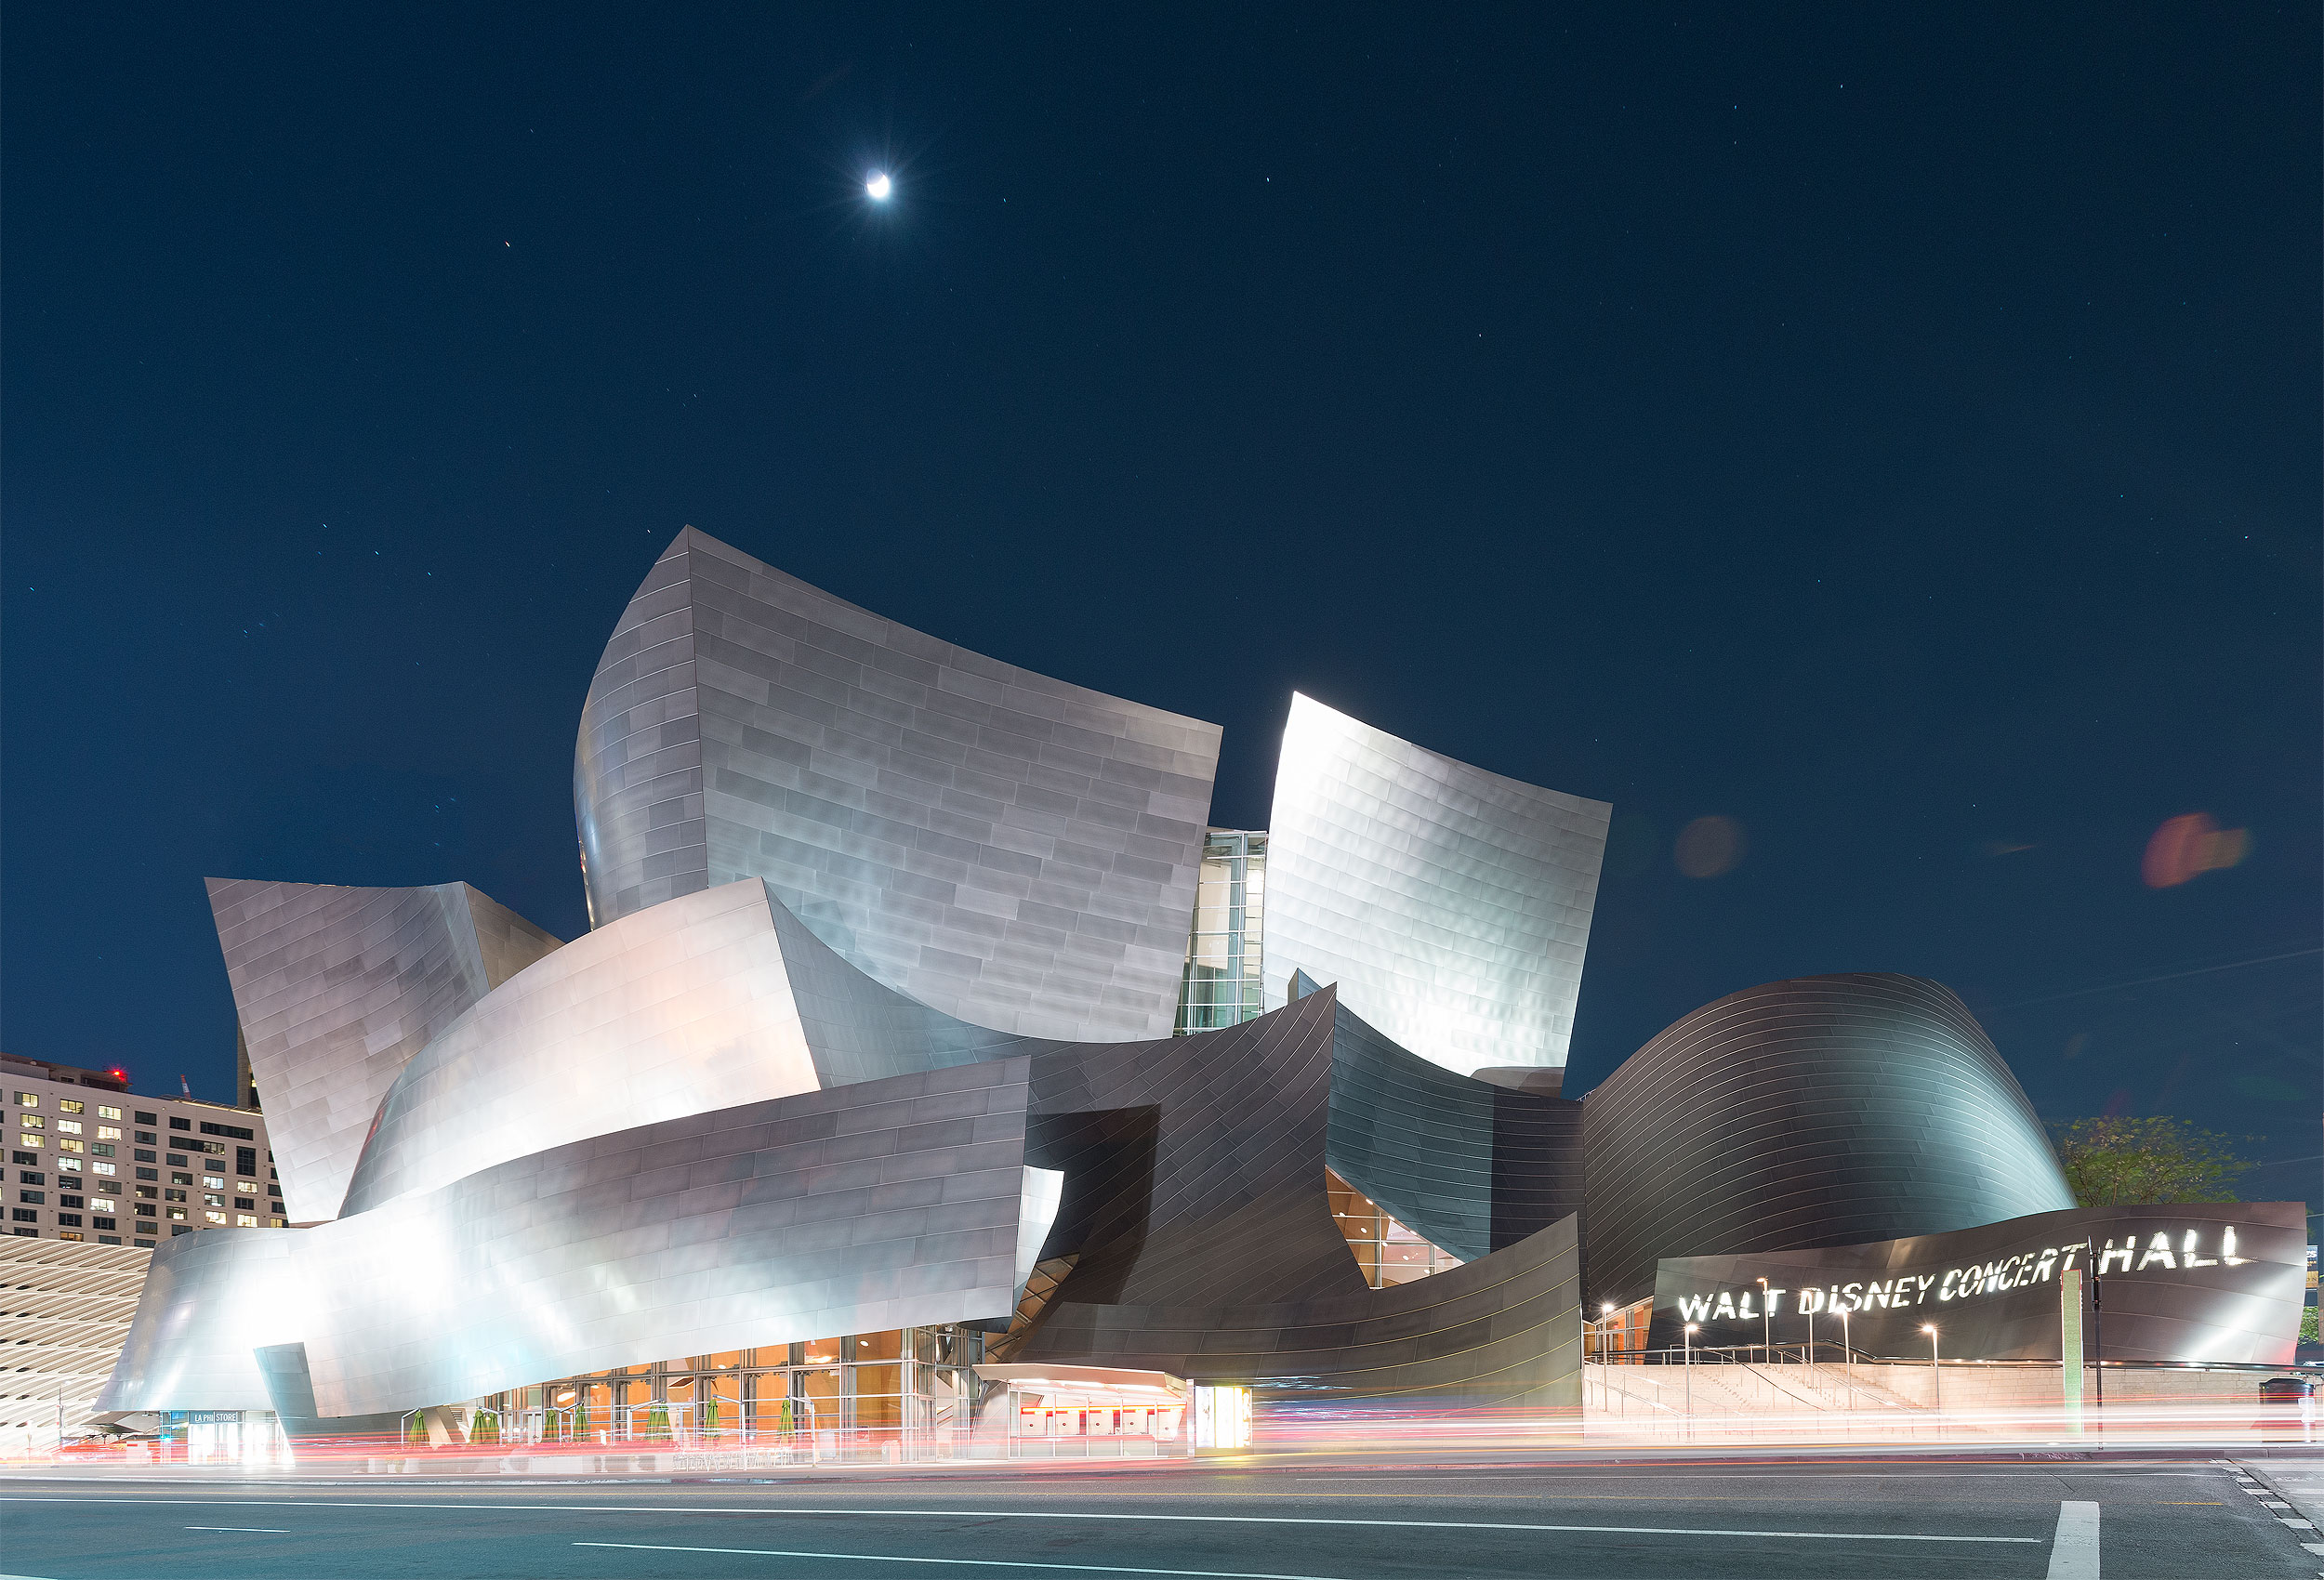 Disney Concert Hall at night by architectural photographer Kristopher Grunert